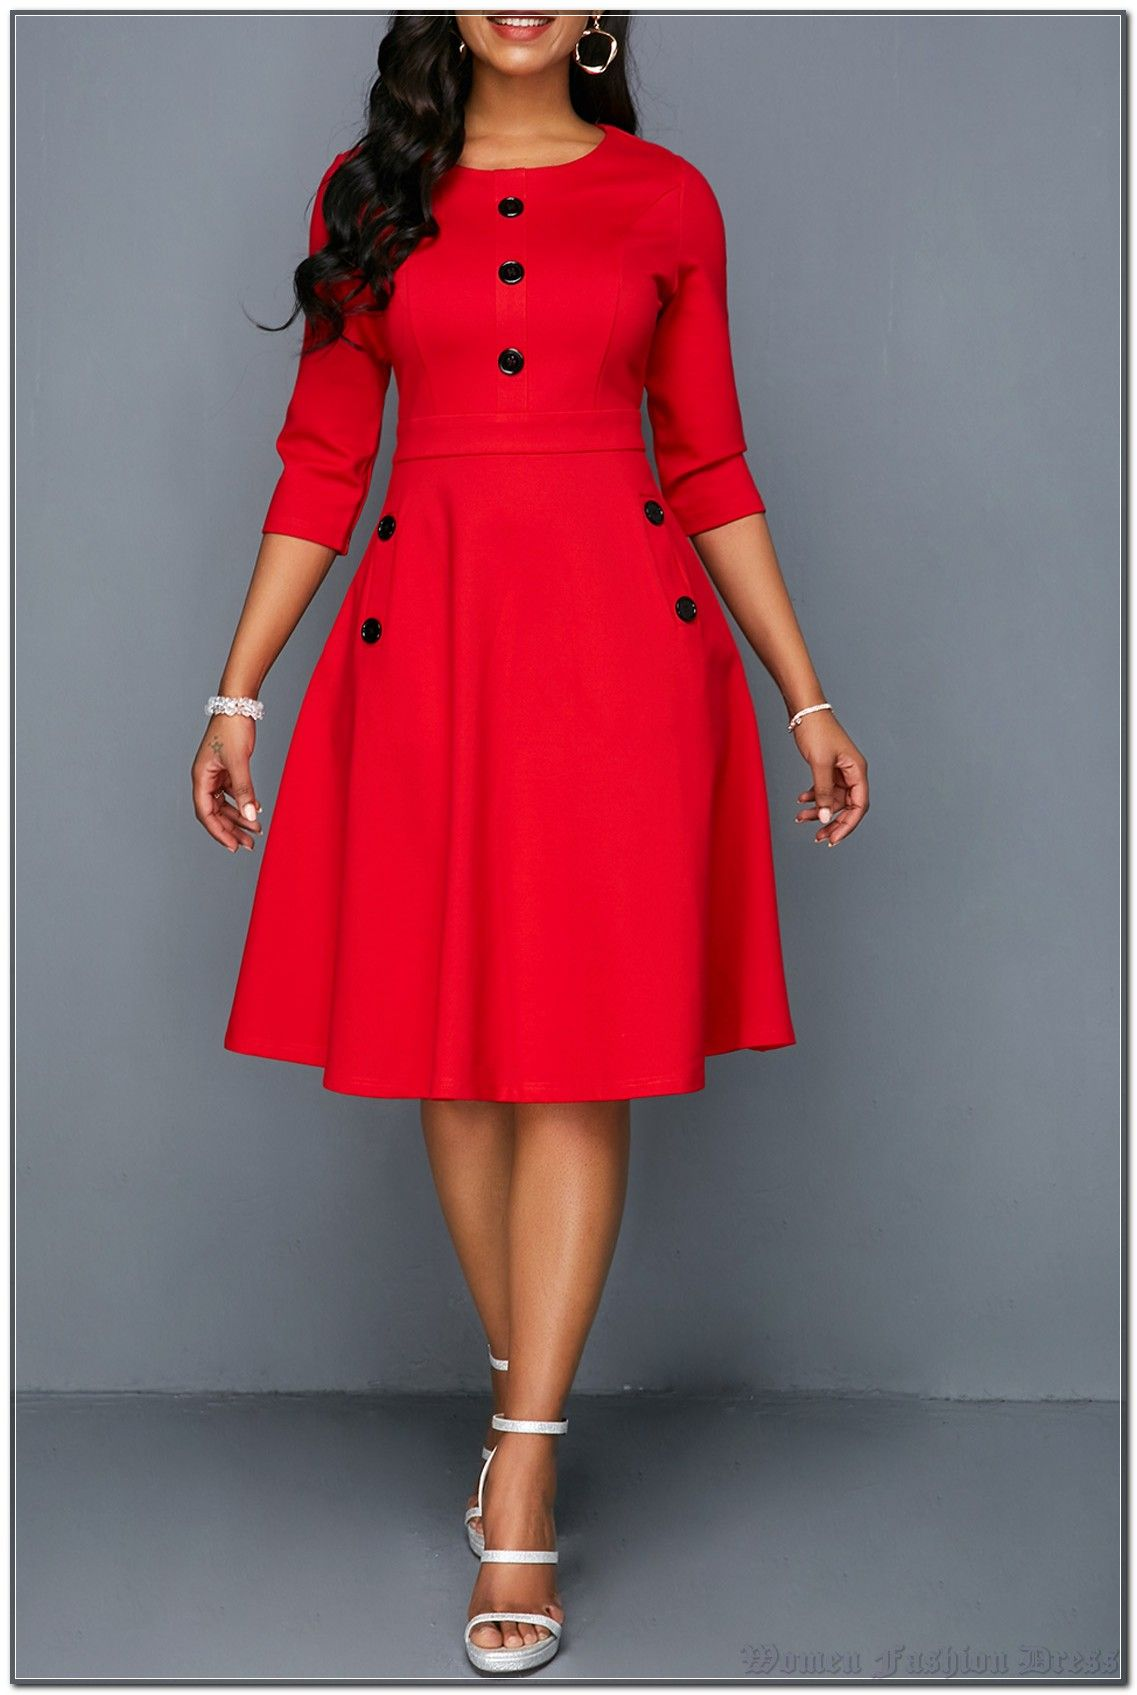 Want A Thriving Business? Focus On Women Fashion Dress!